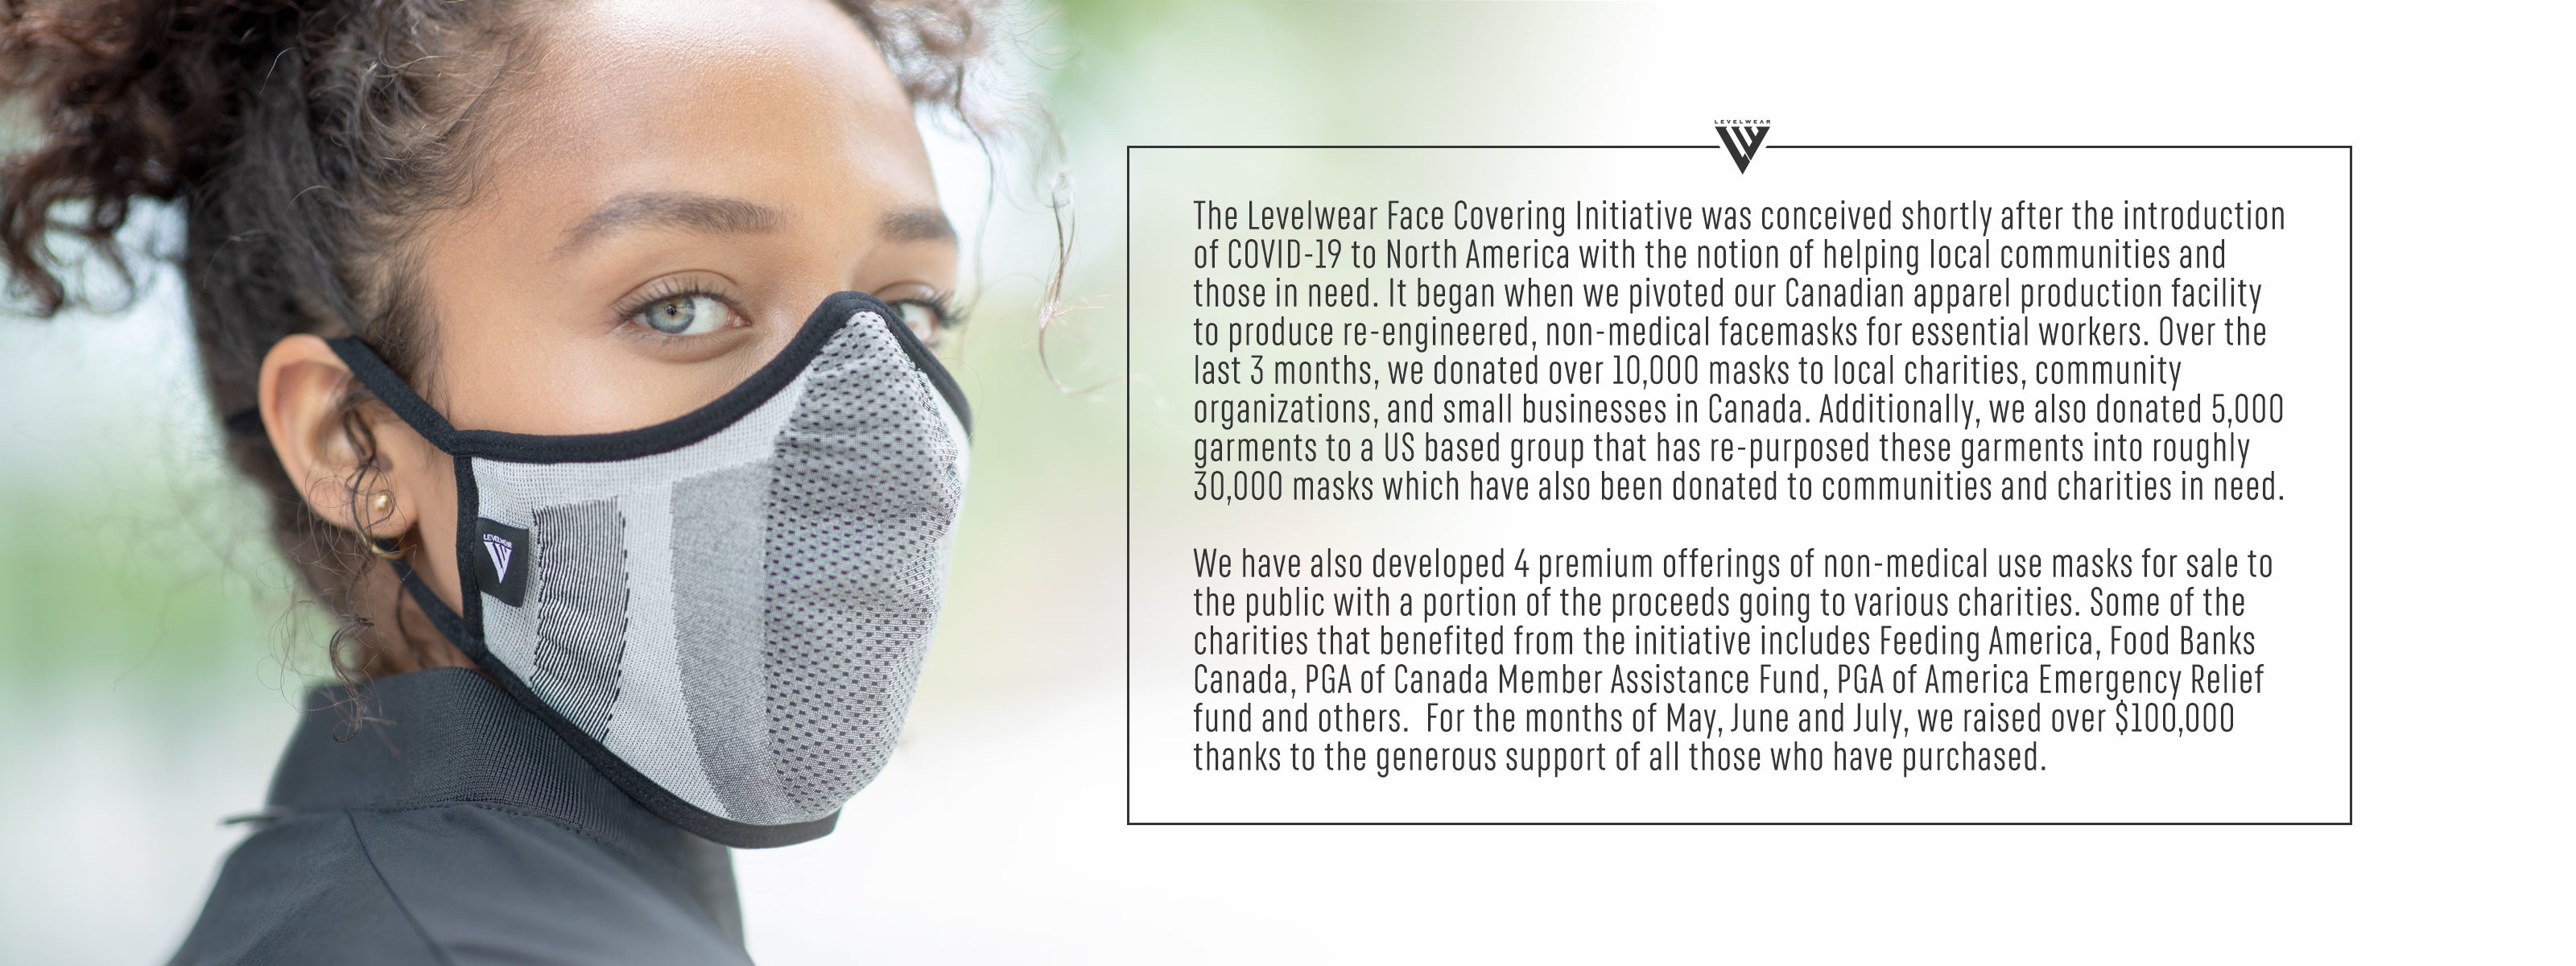 The Levelwear Face Covering